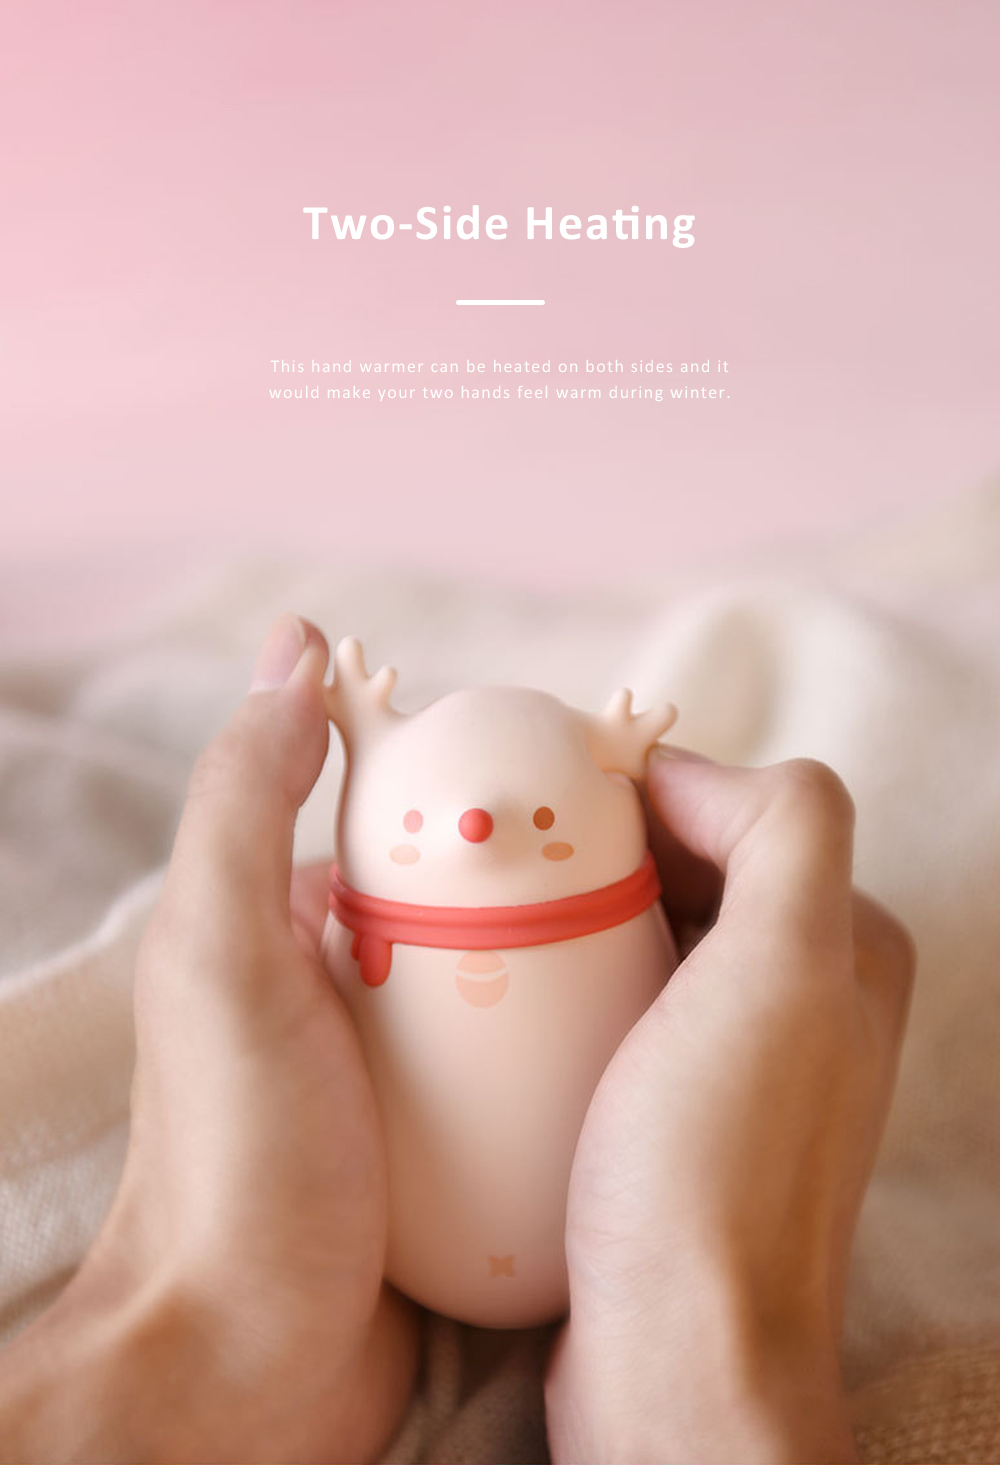 Cute Cartoon Animal Model Portable Power Bank Large Capacity Intelligent Temperature Control Two Sides Heating Hand Warmer 2